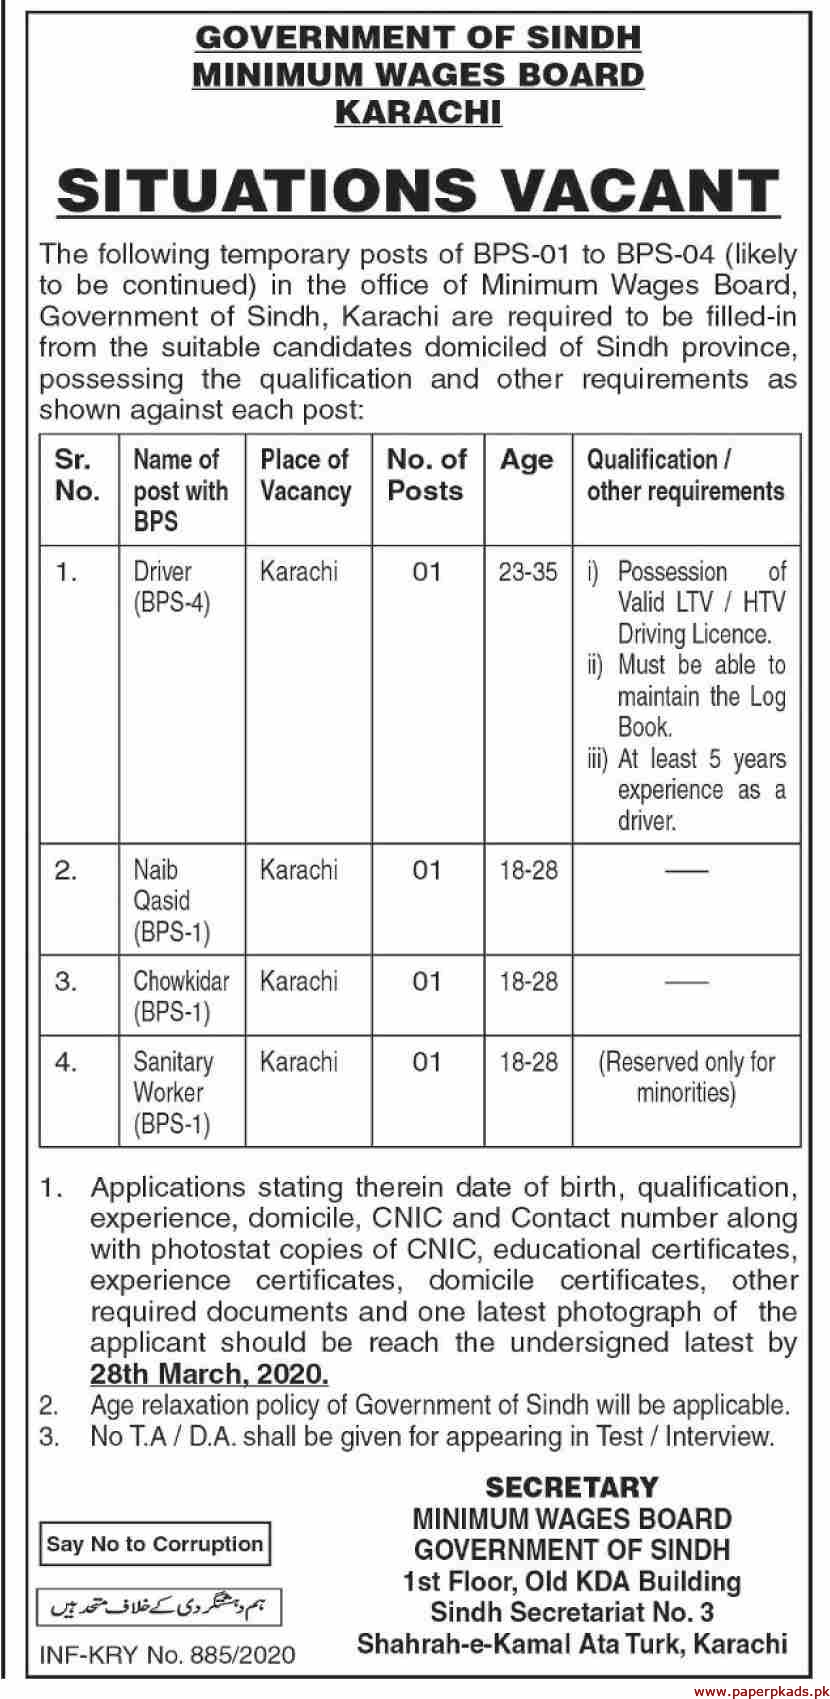 Government of Sindh Minimum Wages Board Karachi Jobs 2020 Latest